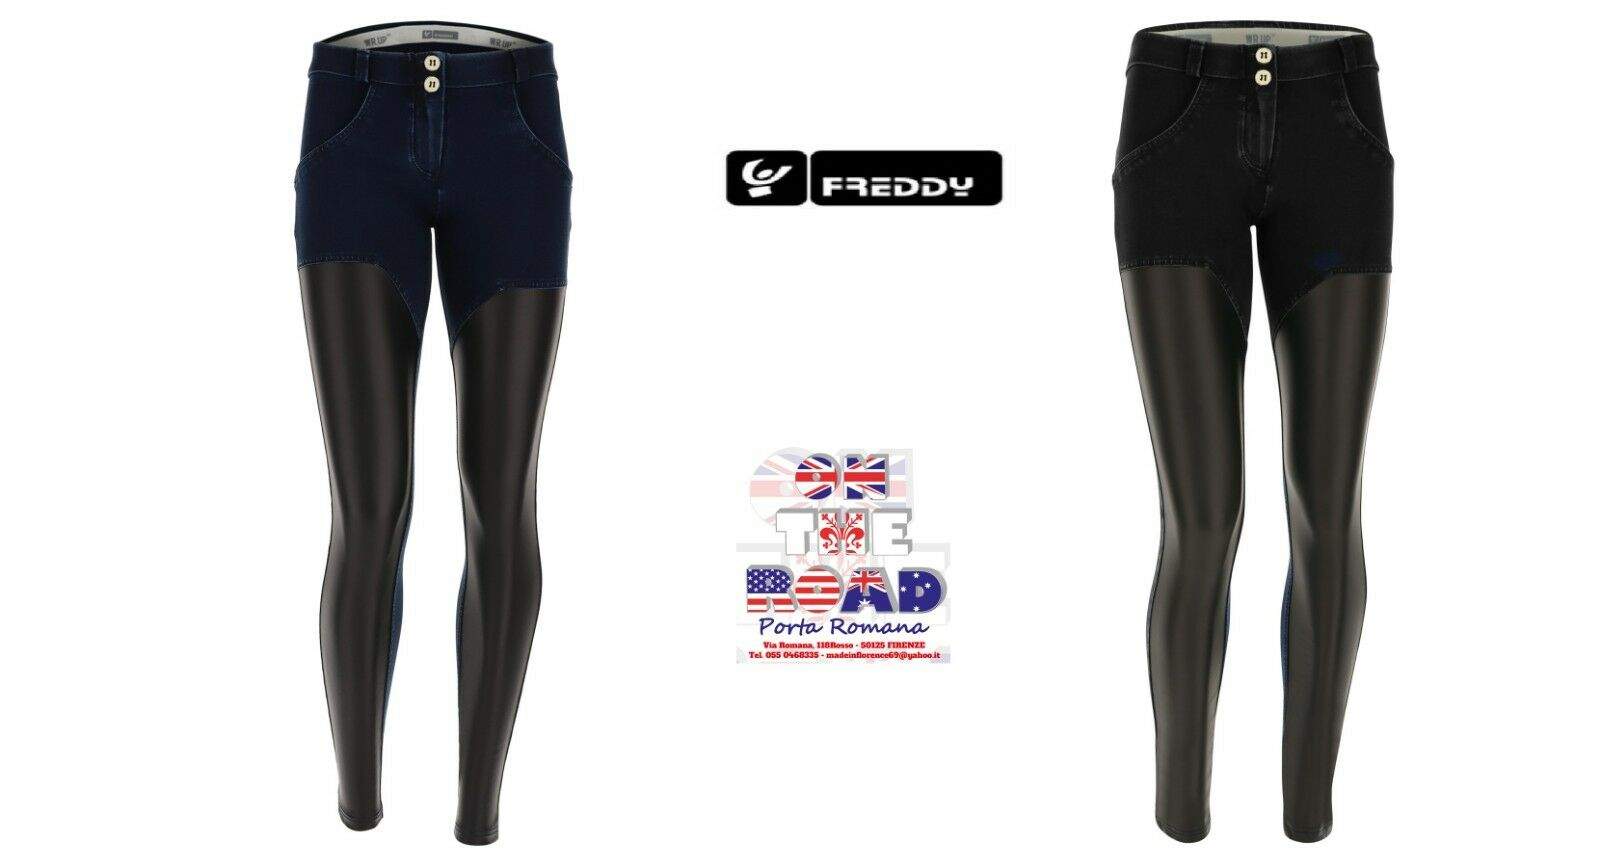 SCONTO 10% FREDDY WR.UP PANTALONE PUSH UP WRUP1RF801 JEANS INSERTI ECOPELLE